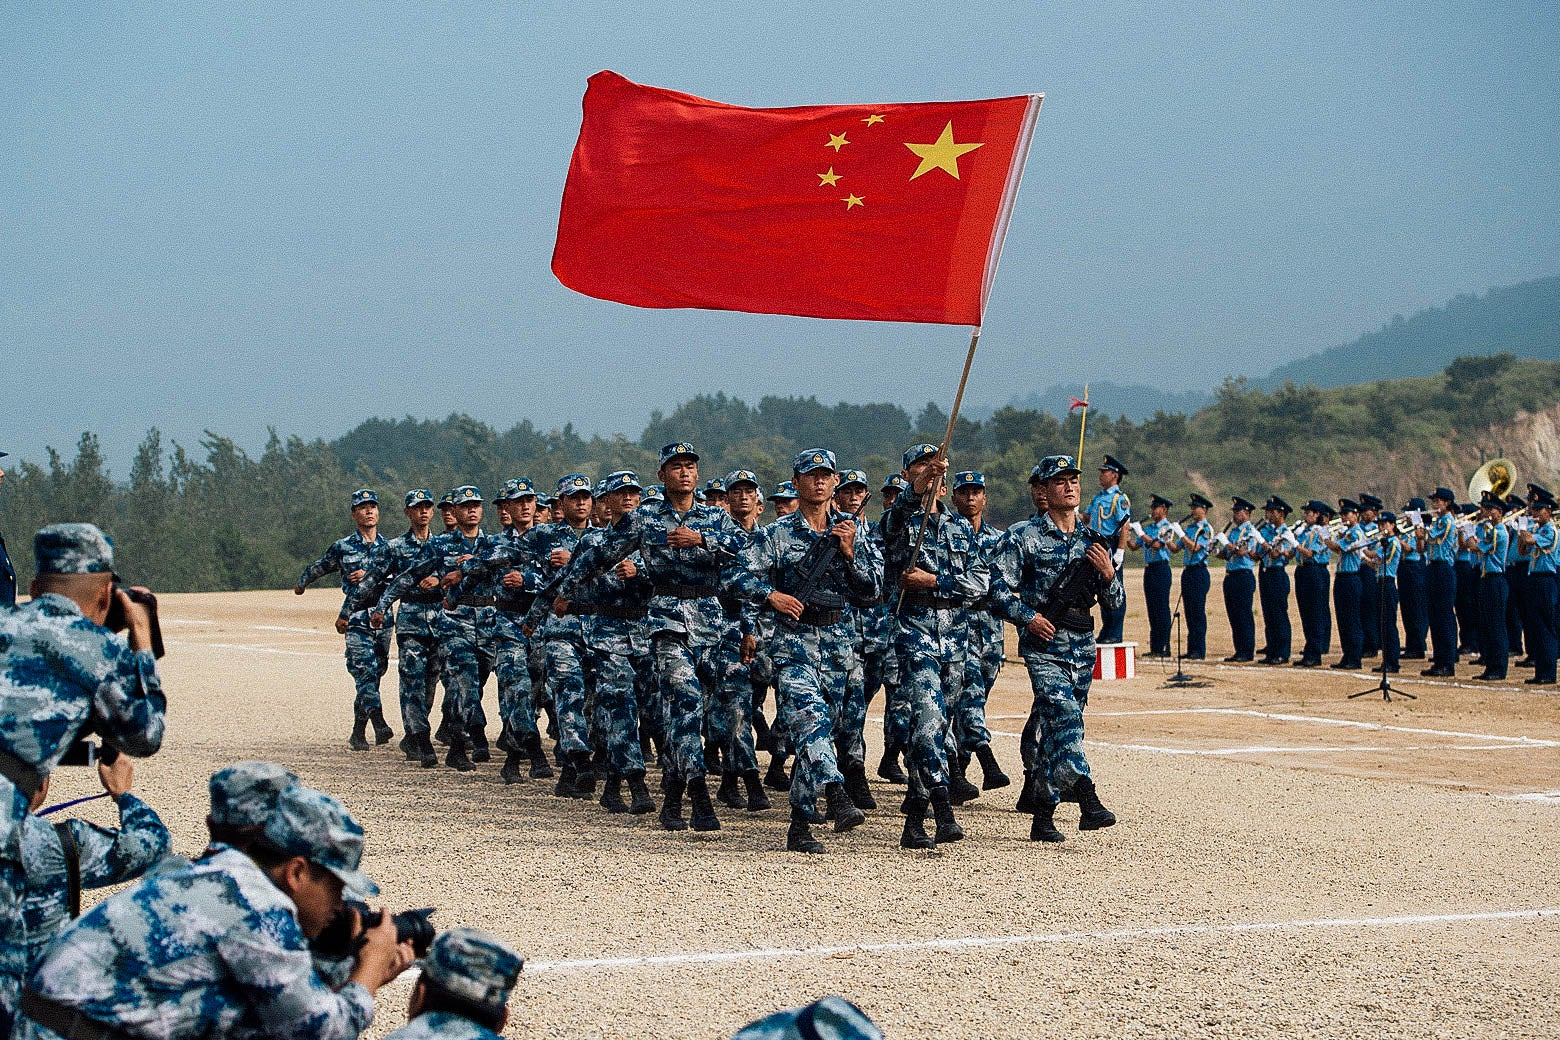 Uniformed Chinese troops march in formation with their national flag.